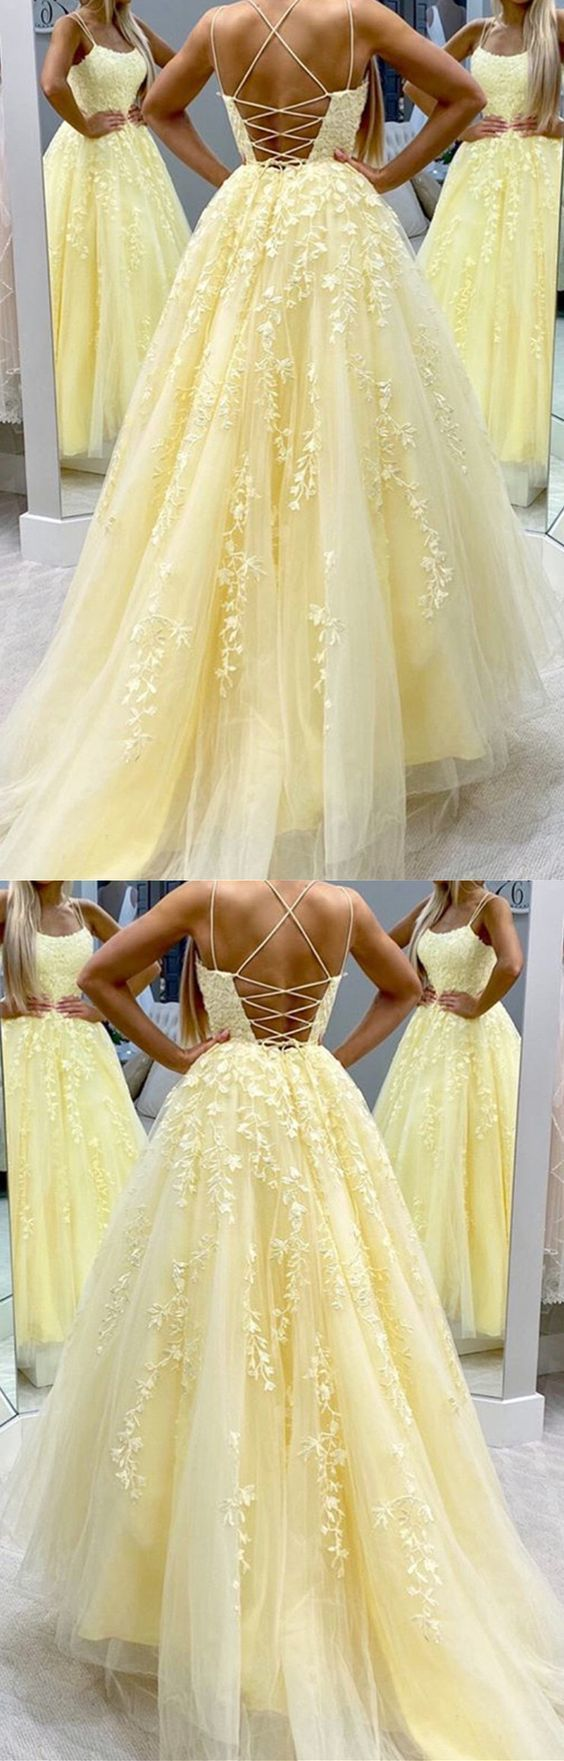 elegant tulle prom dresses yellow ball gown 2020